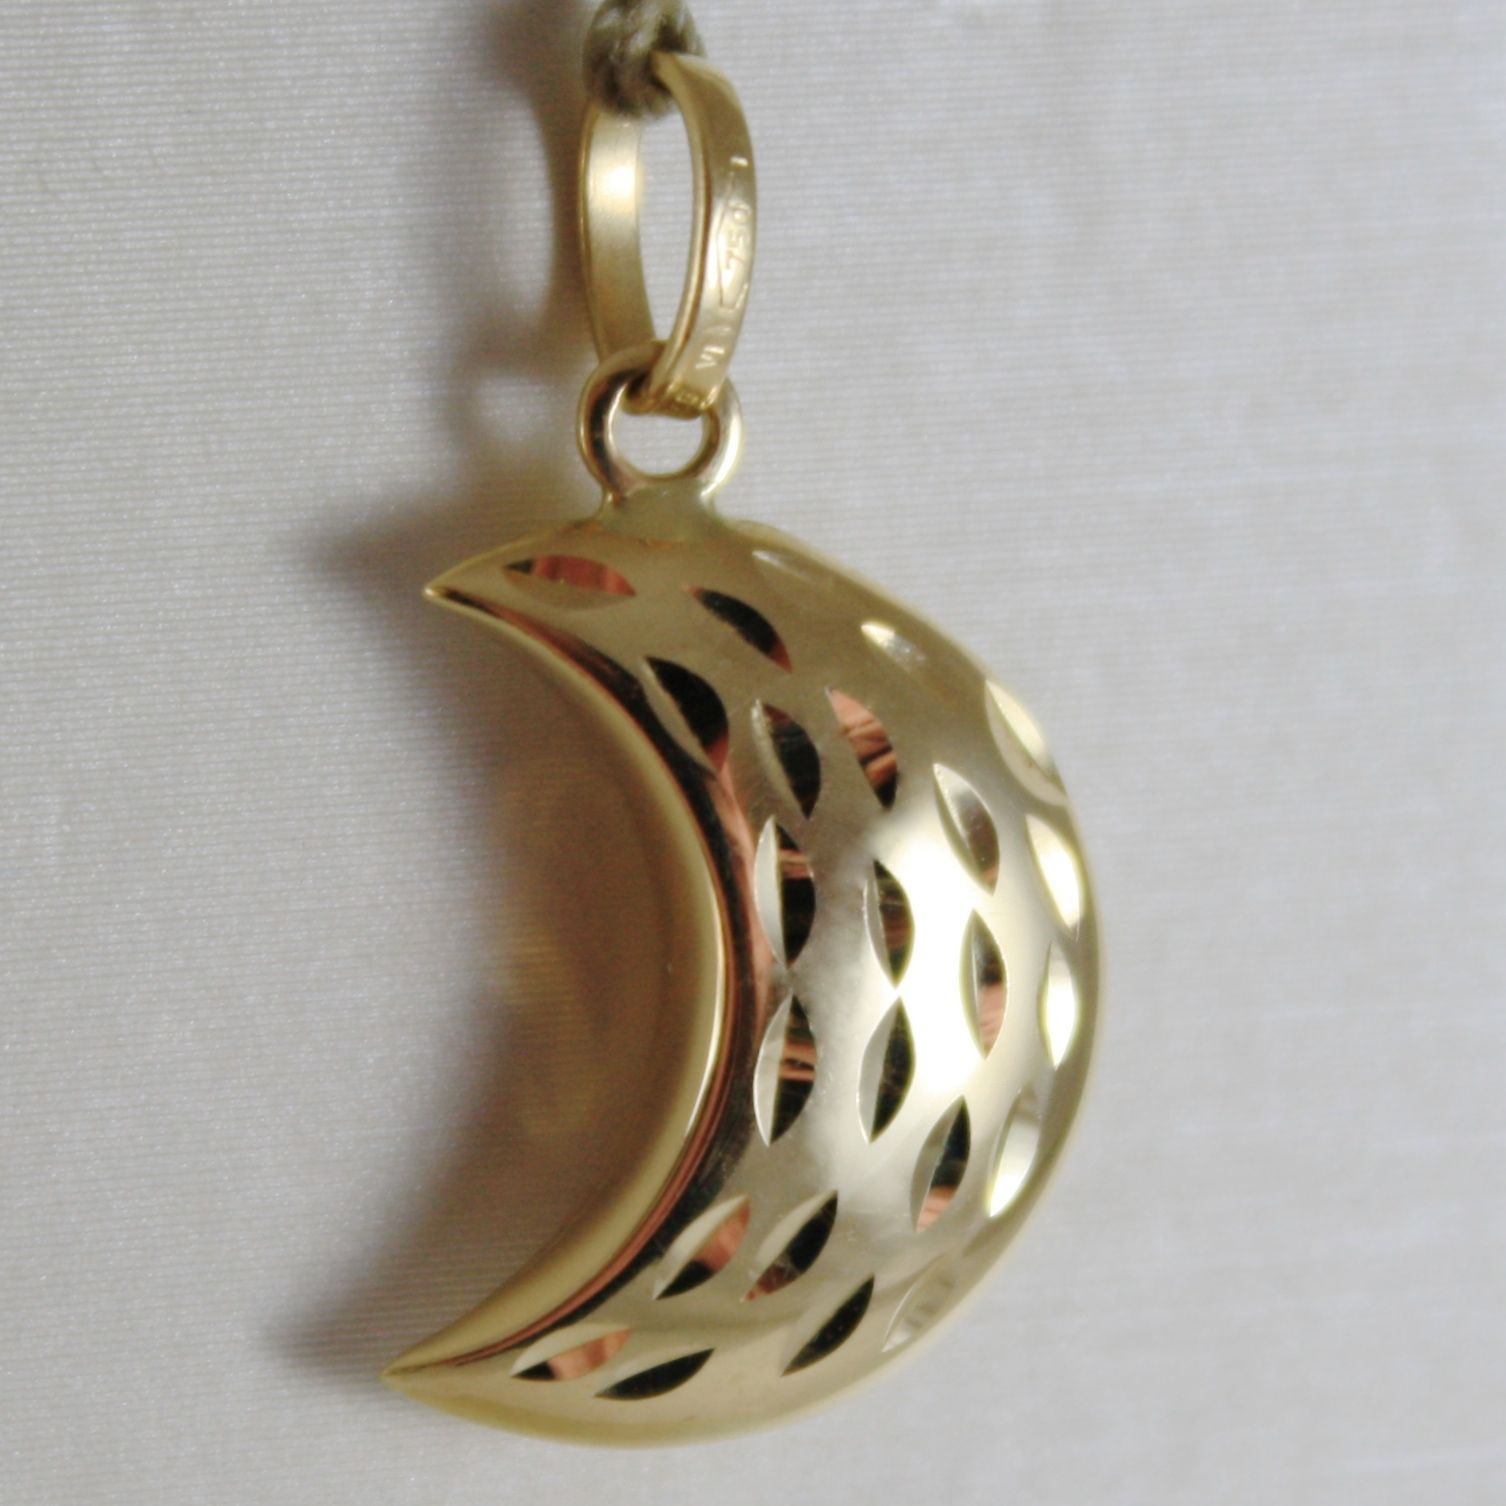 18K YELLOW GOLD ROUNDED MINI HALF MOON PENDANT FINELY HAMMERED MADE IN ITALY